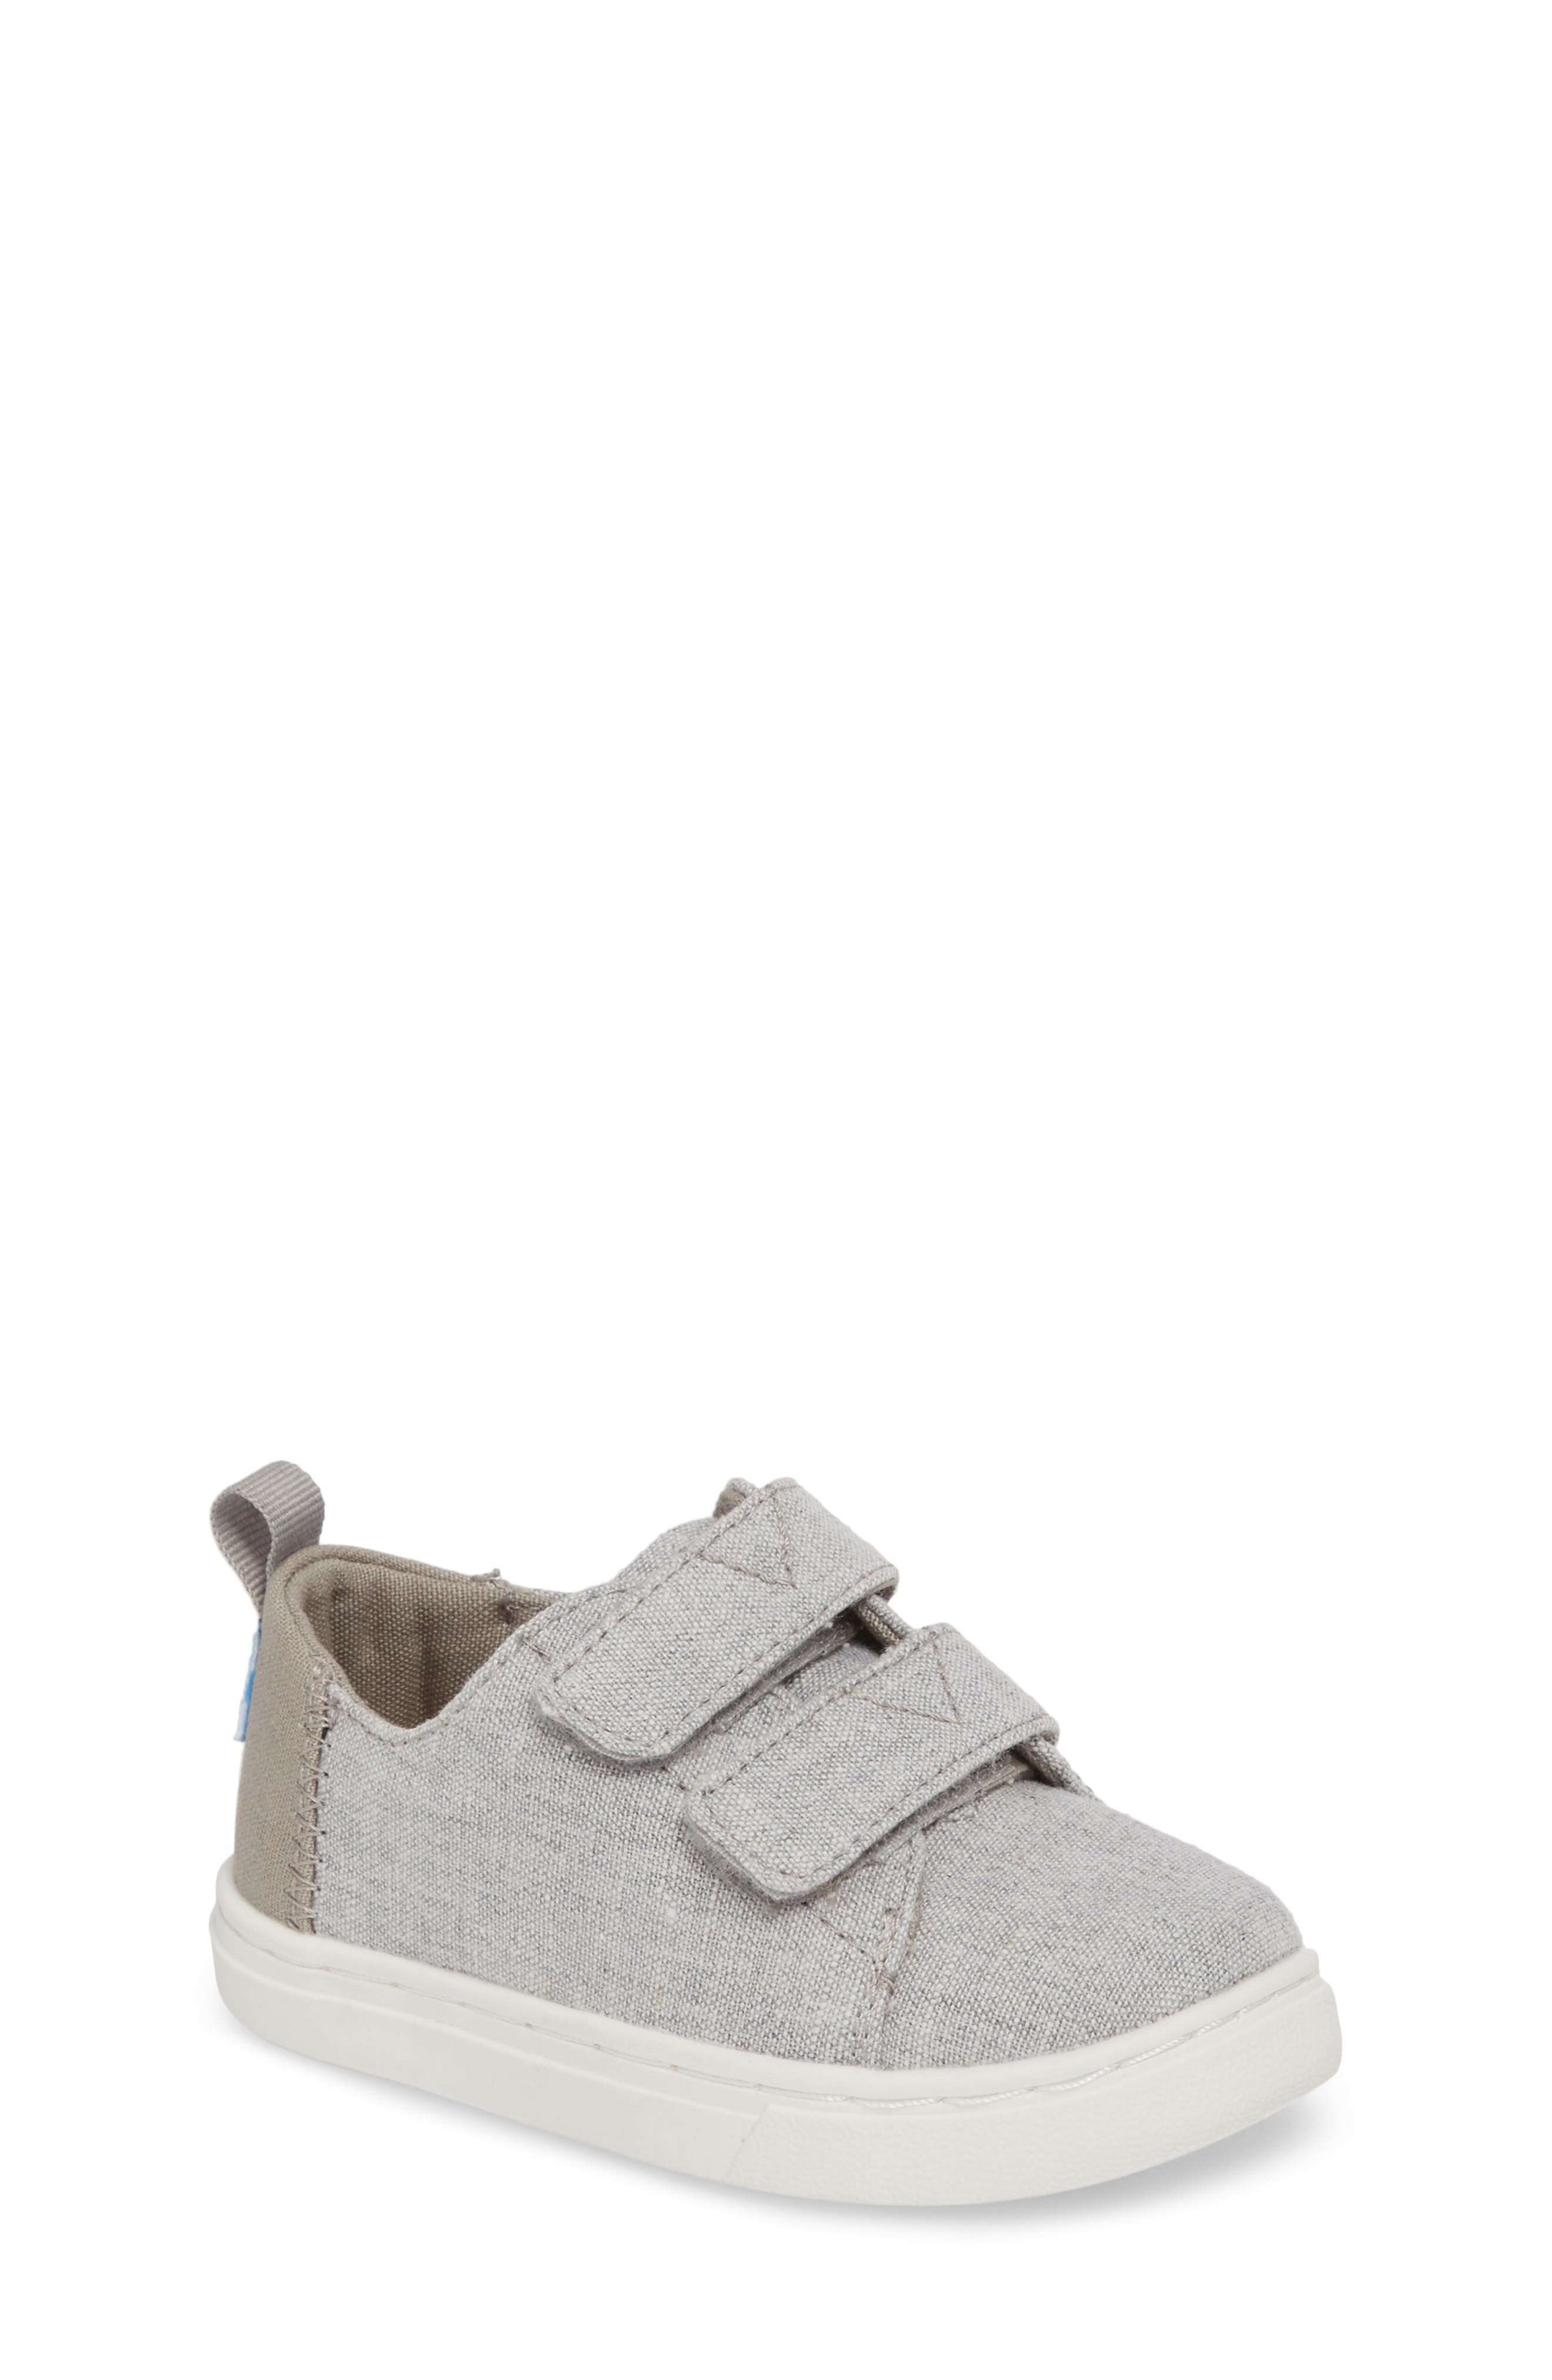 nordstrom crib shoes baby toddler c walker style cribs shoe toms